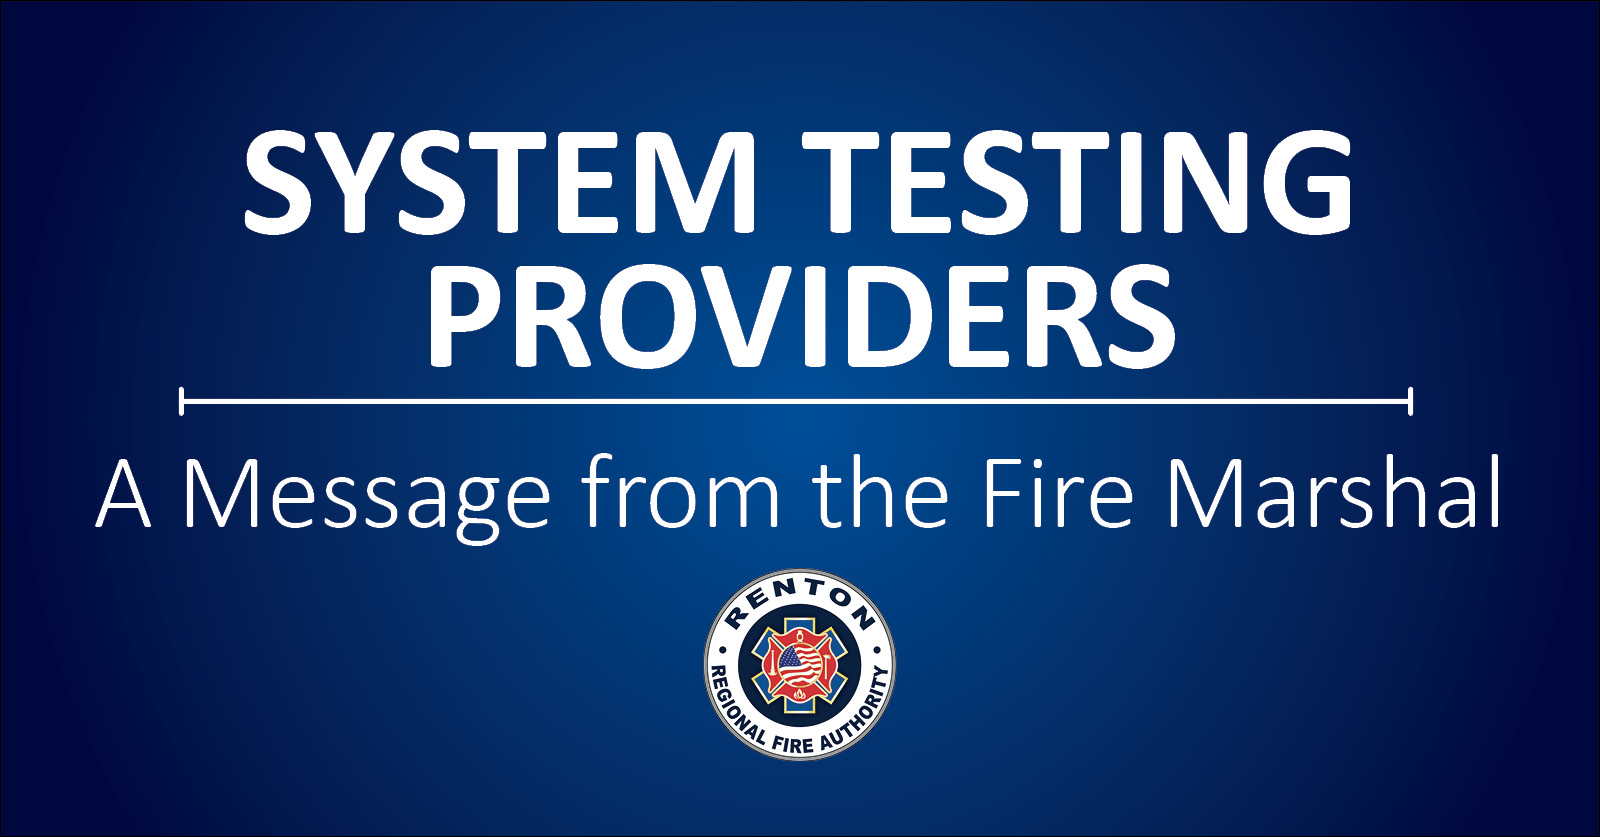 System Testing Provider Notice – A Message from the Fire Marshal